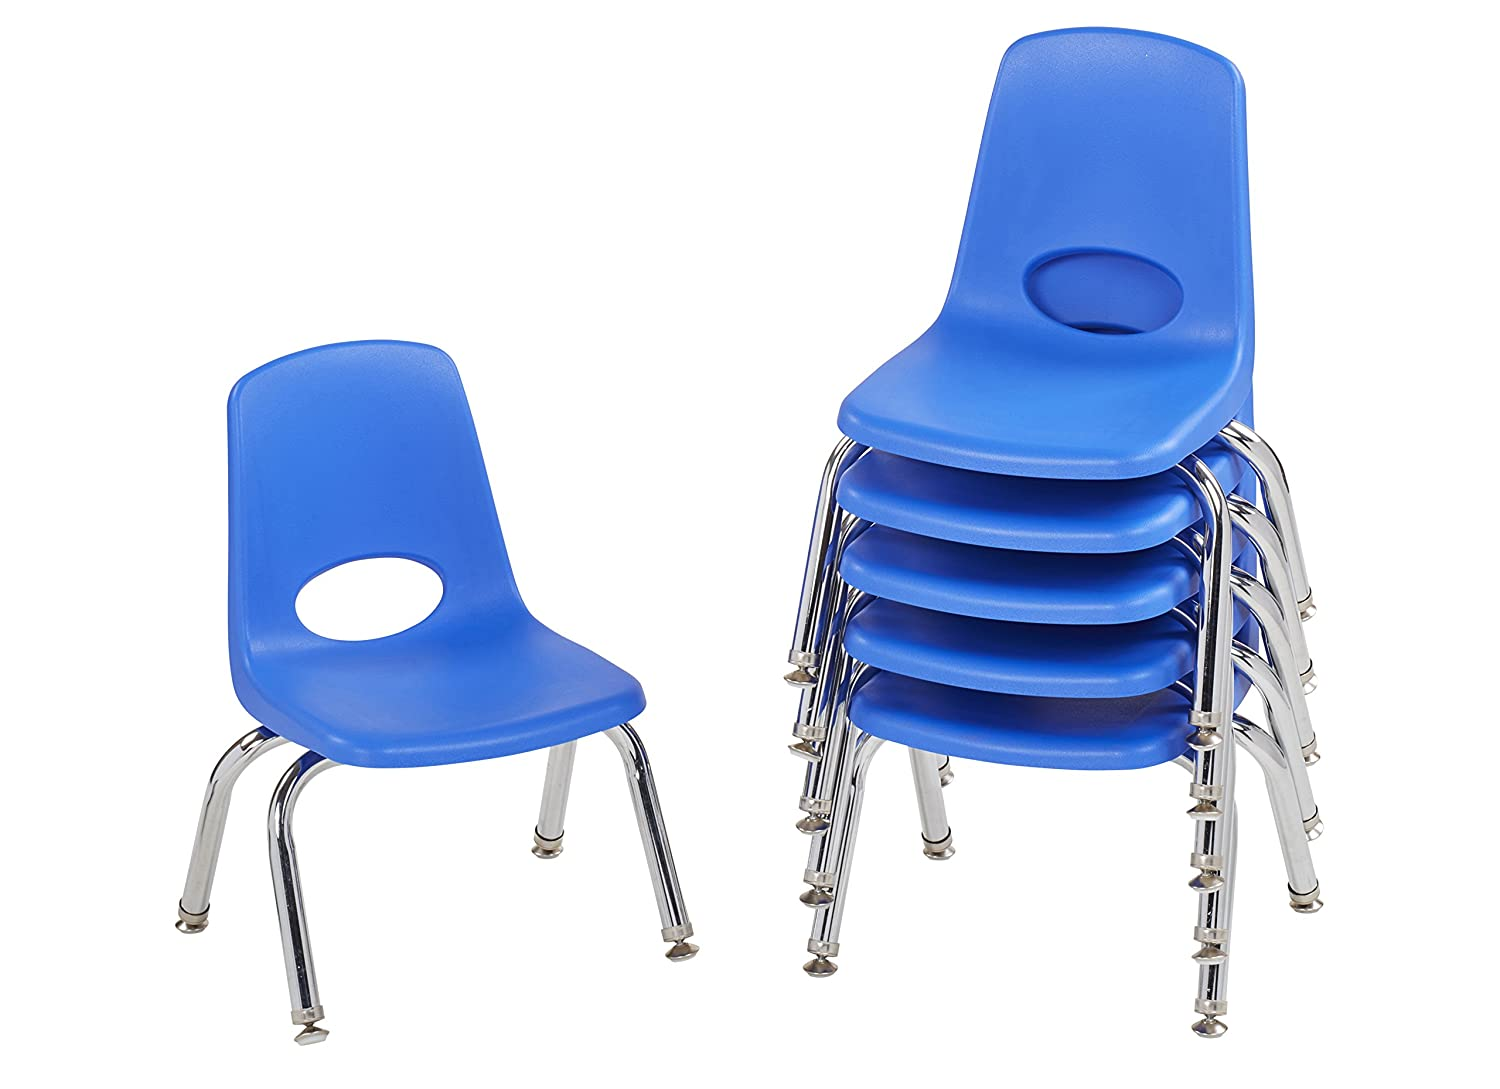 ECR4Kids 10 School Stack Chair, Chrome Legs with Nylon Swivel Glides, Blue (6-Pack) ELR-0192-BLG